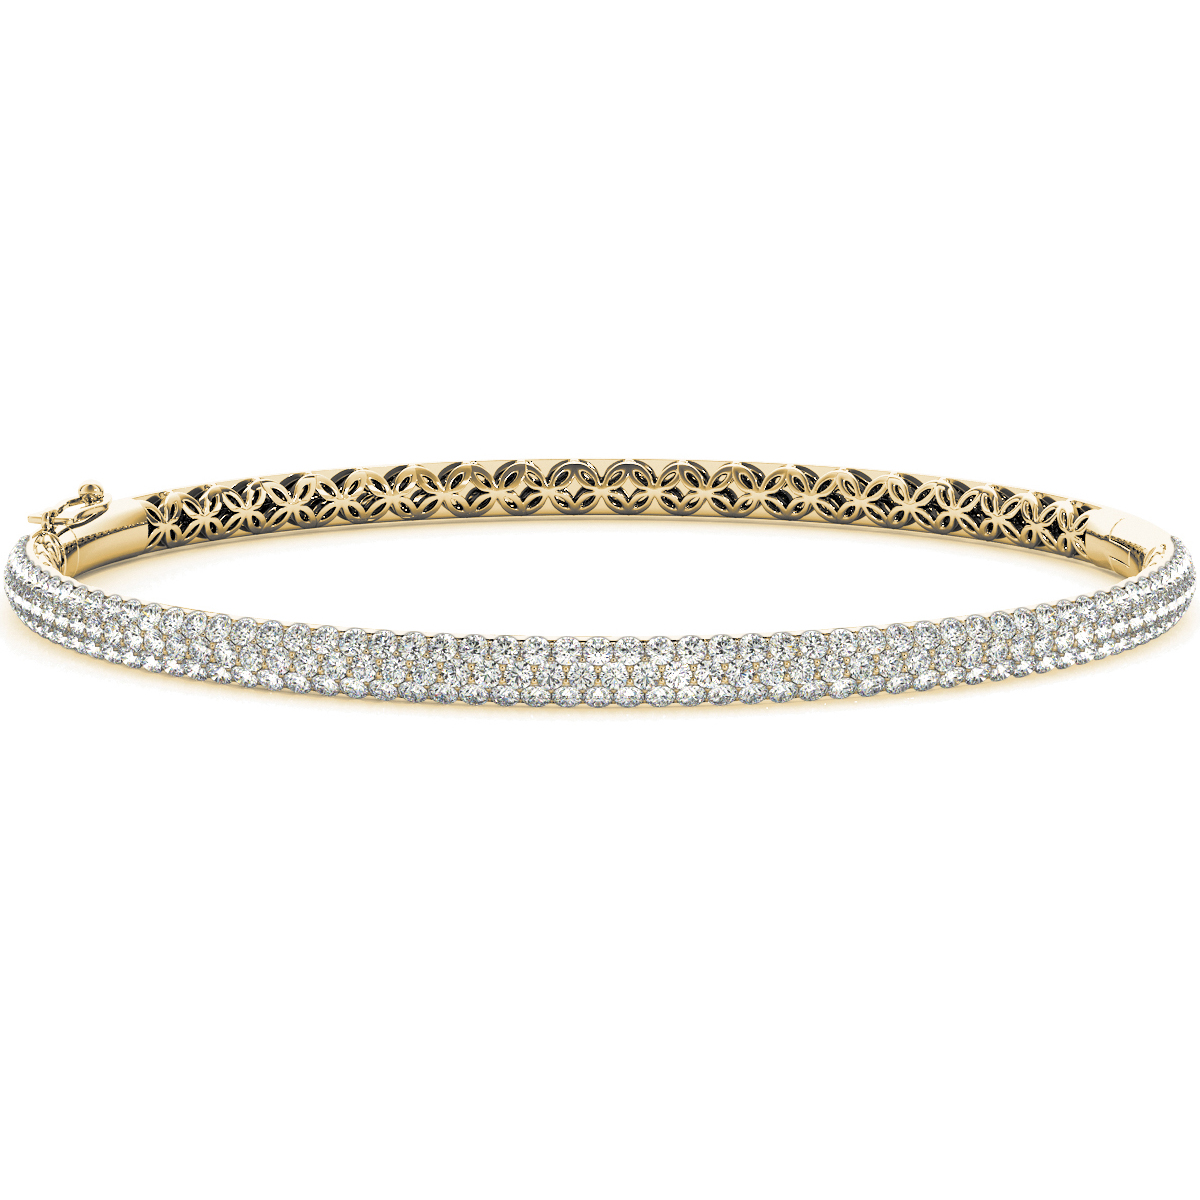 14k-yellow-gold-multi-row-bangles-and-bracelet-70011